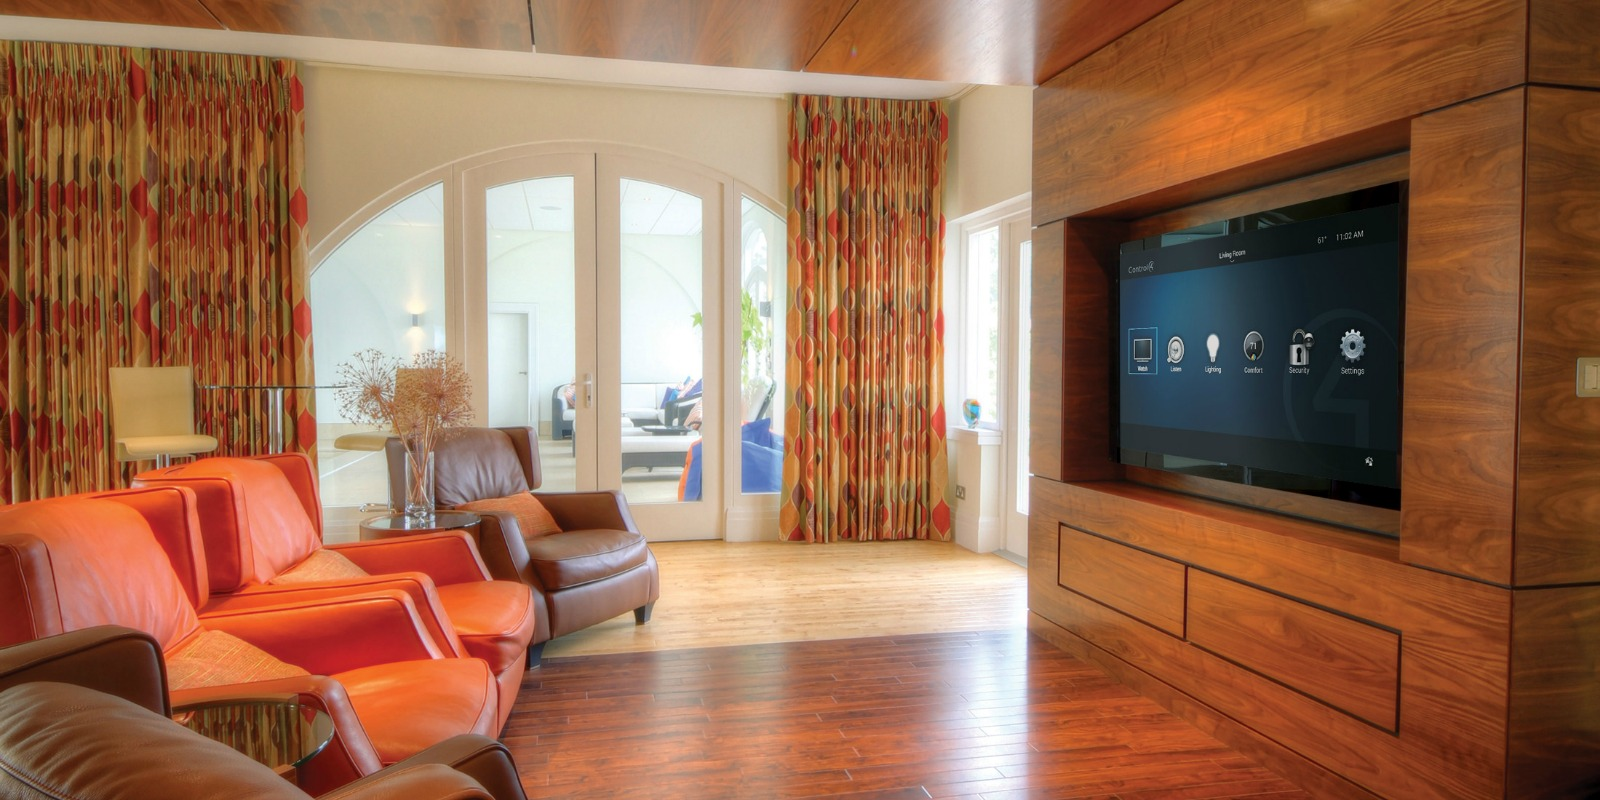 control4 home automation systems